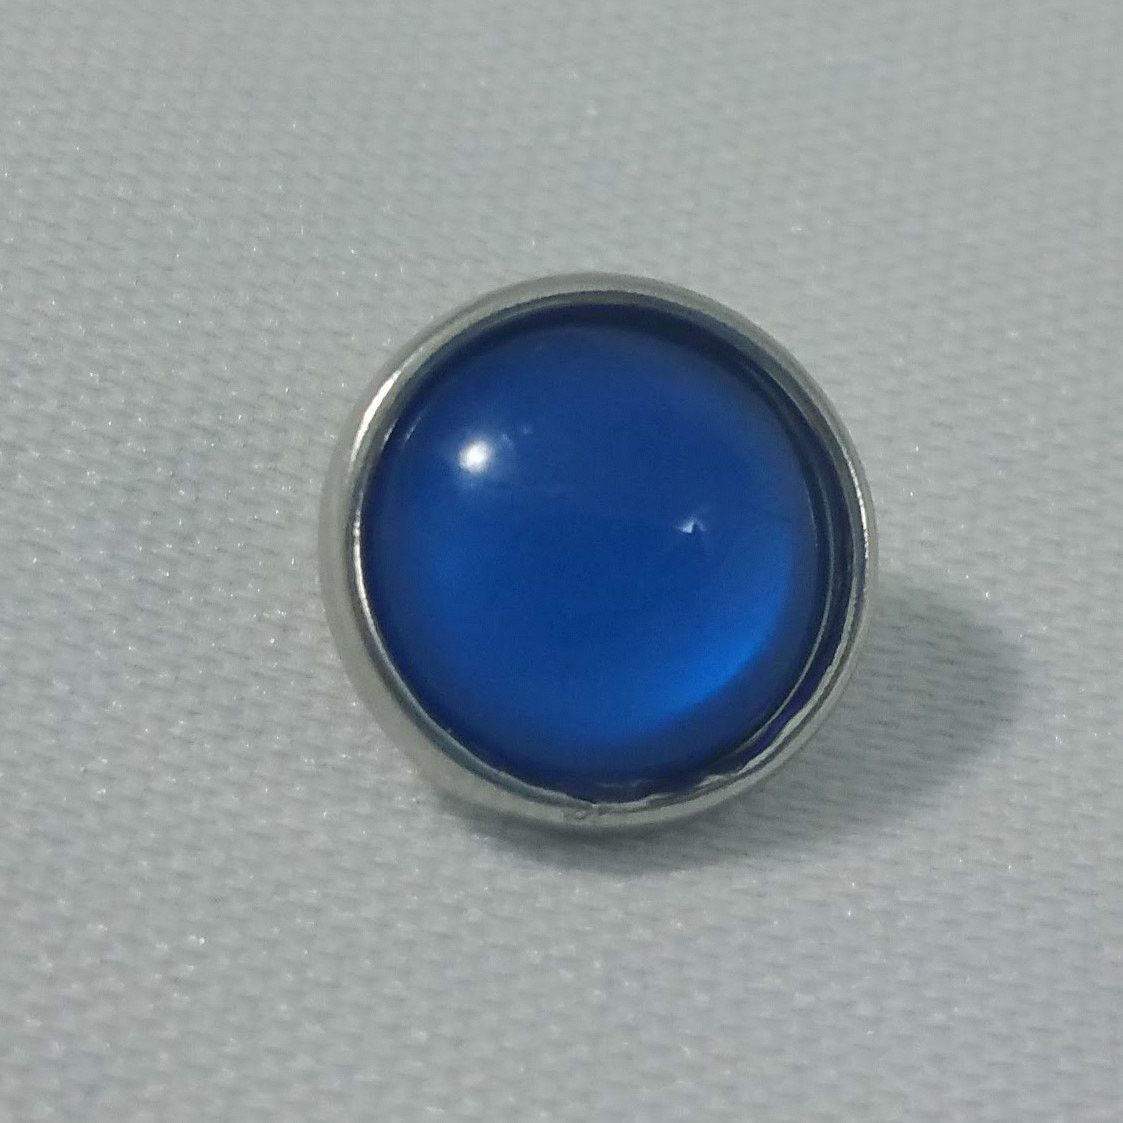 1 PC - 12MM Blue Glass Dome Silver Charm for Candy Snap Jewelry Limited Edition CC0068